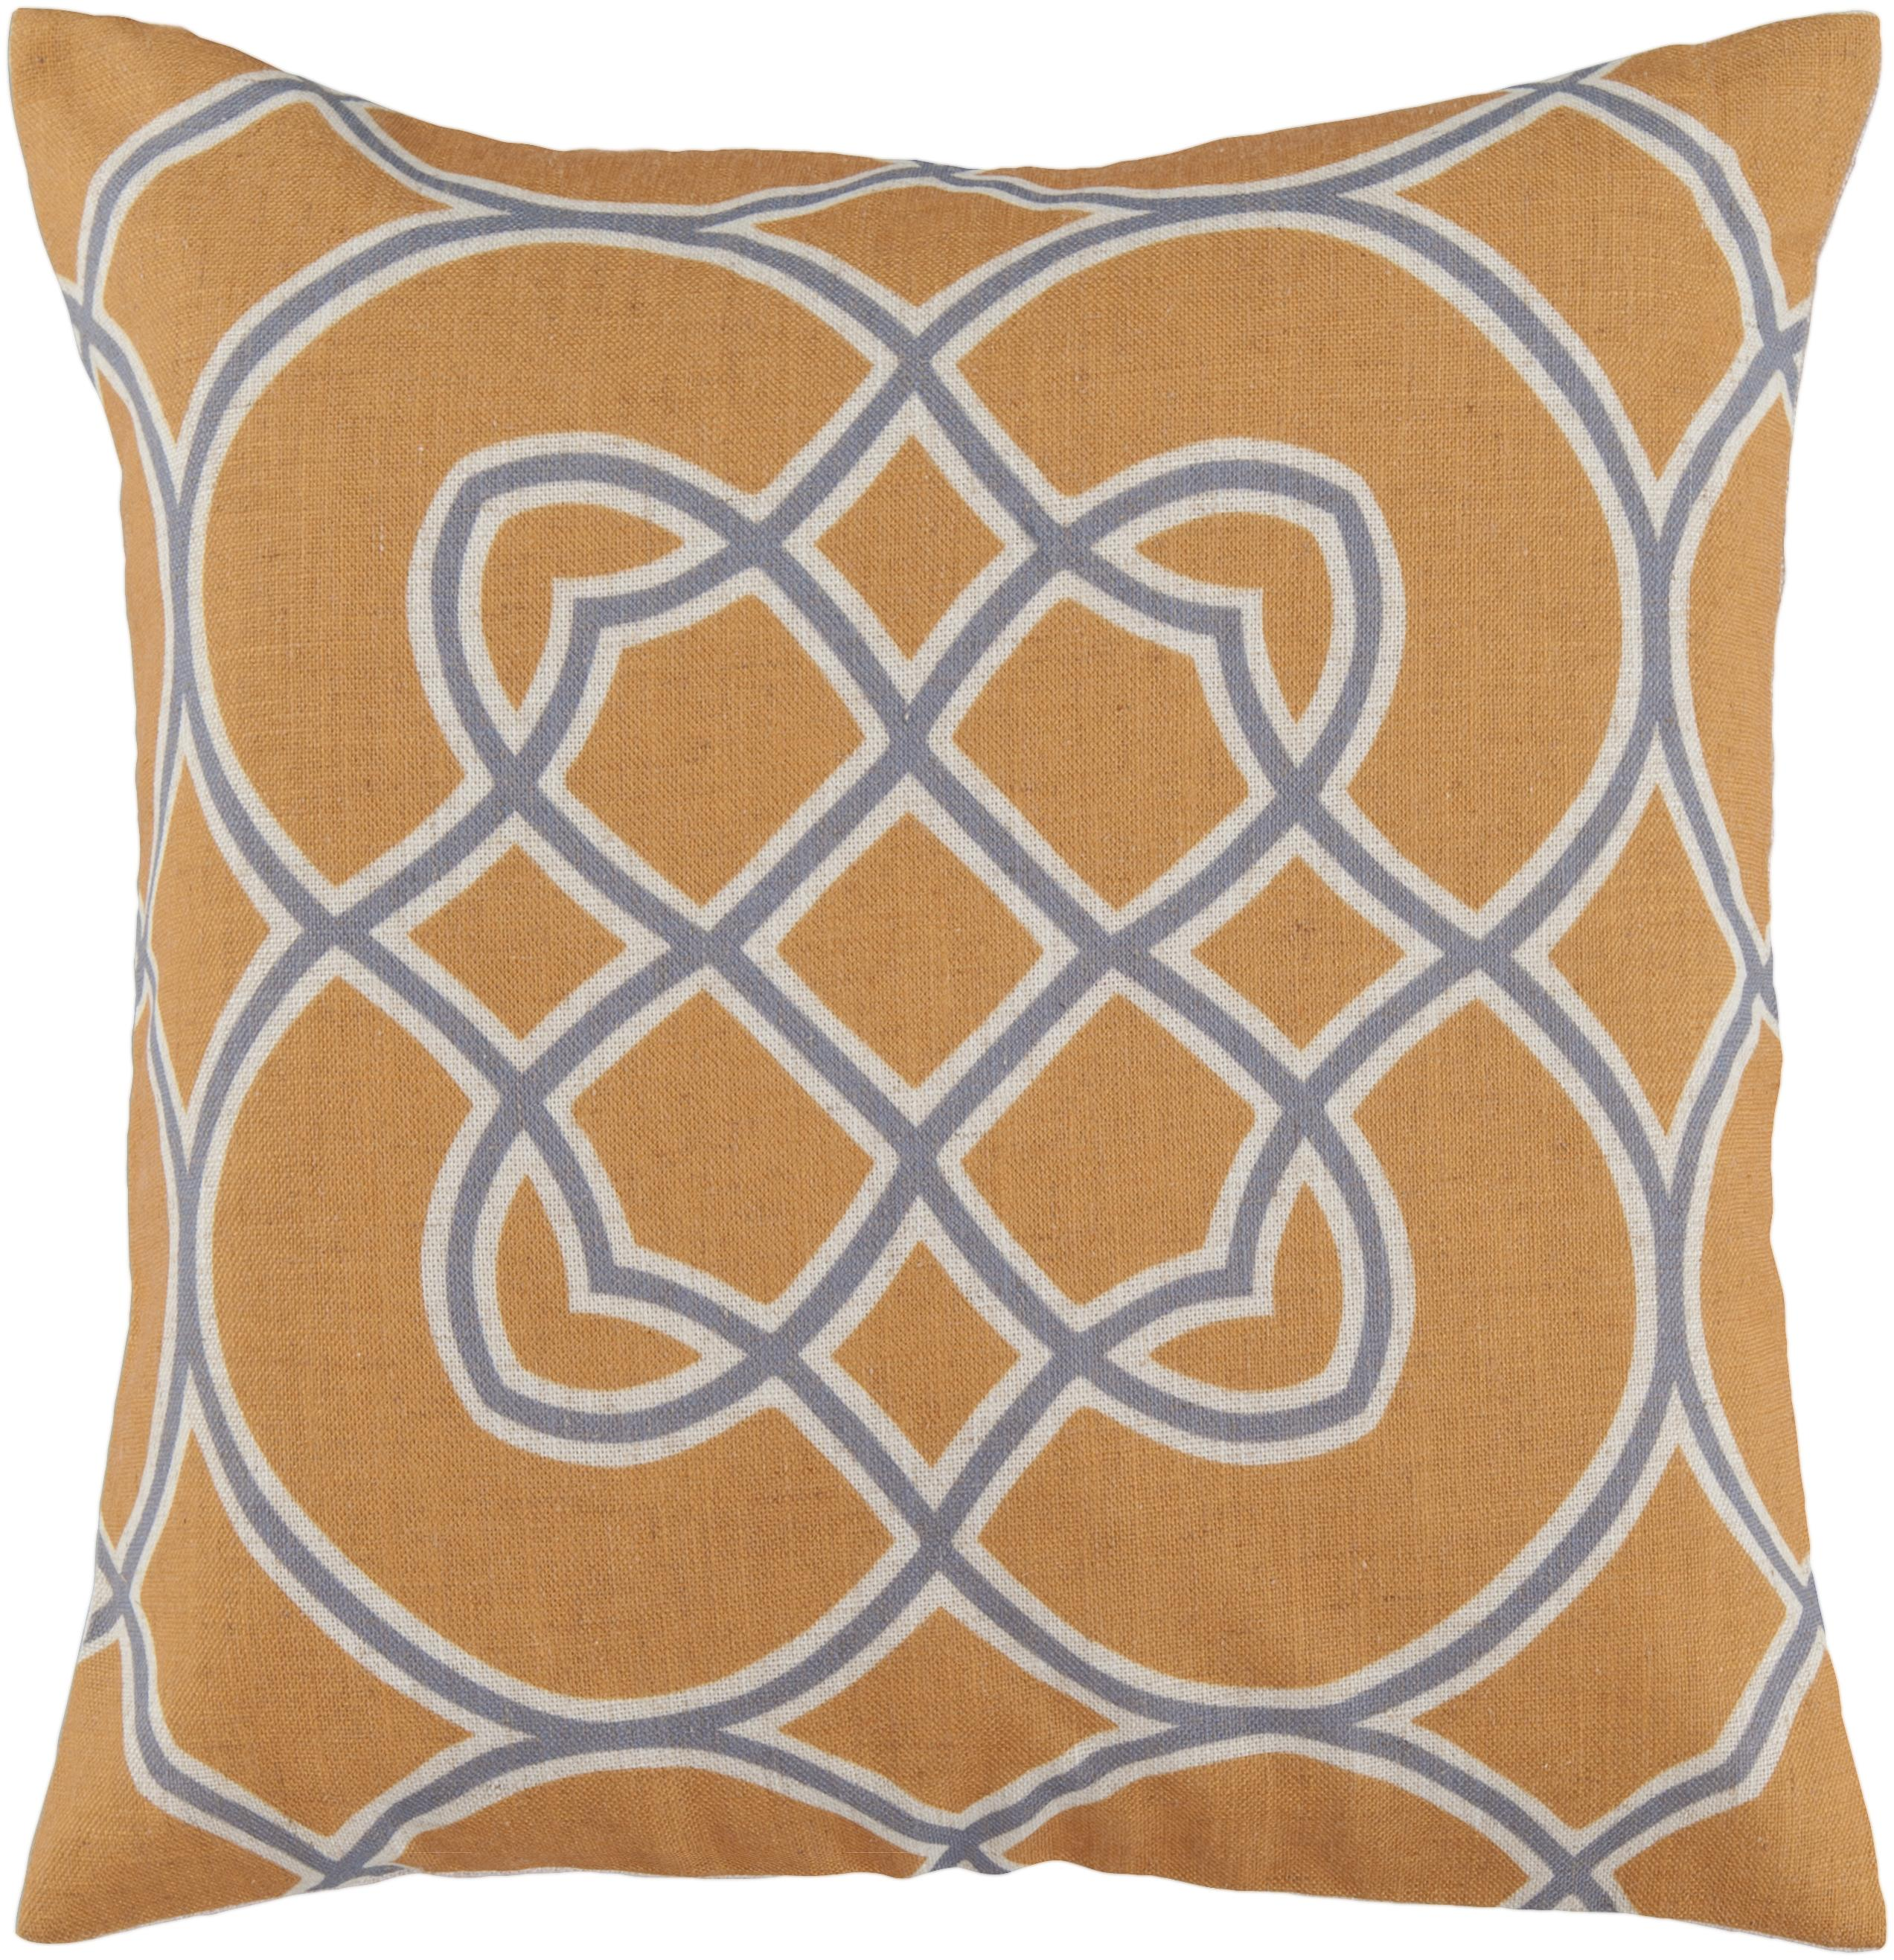 "Surya Pillows 22"" x 22"" Pillow - Item Number: FF006-2222P"